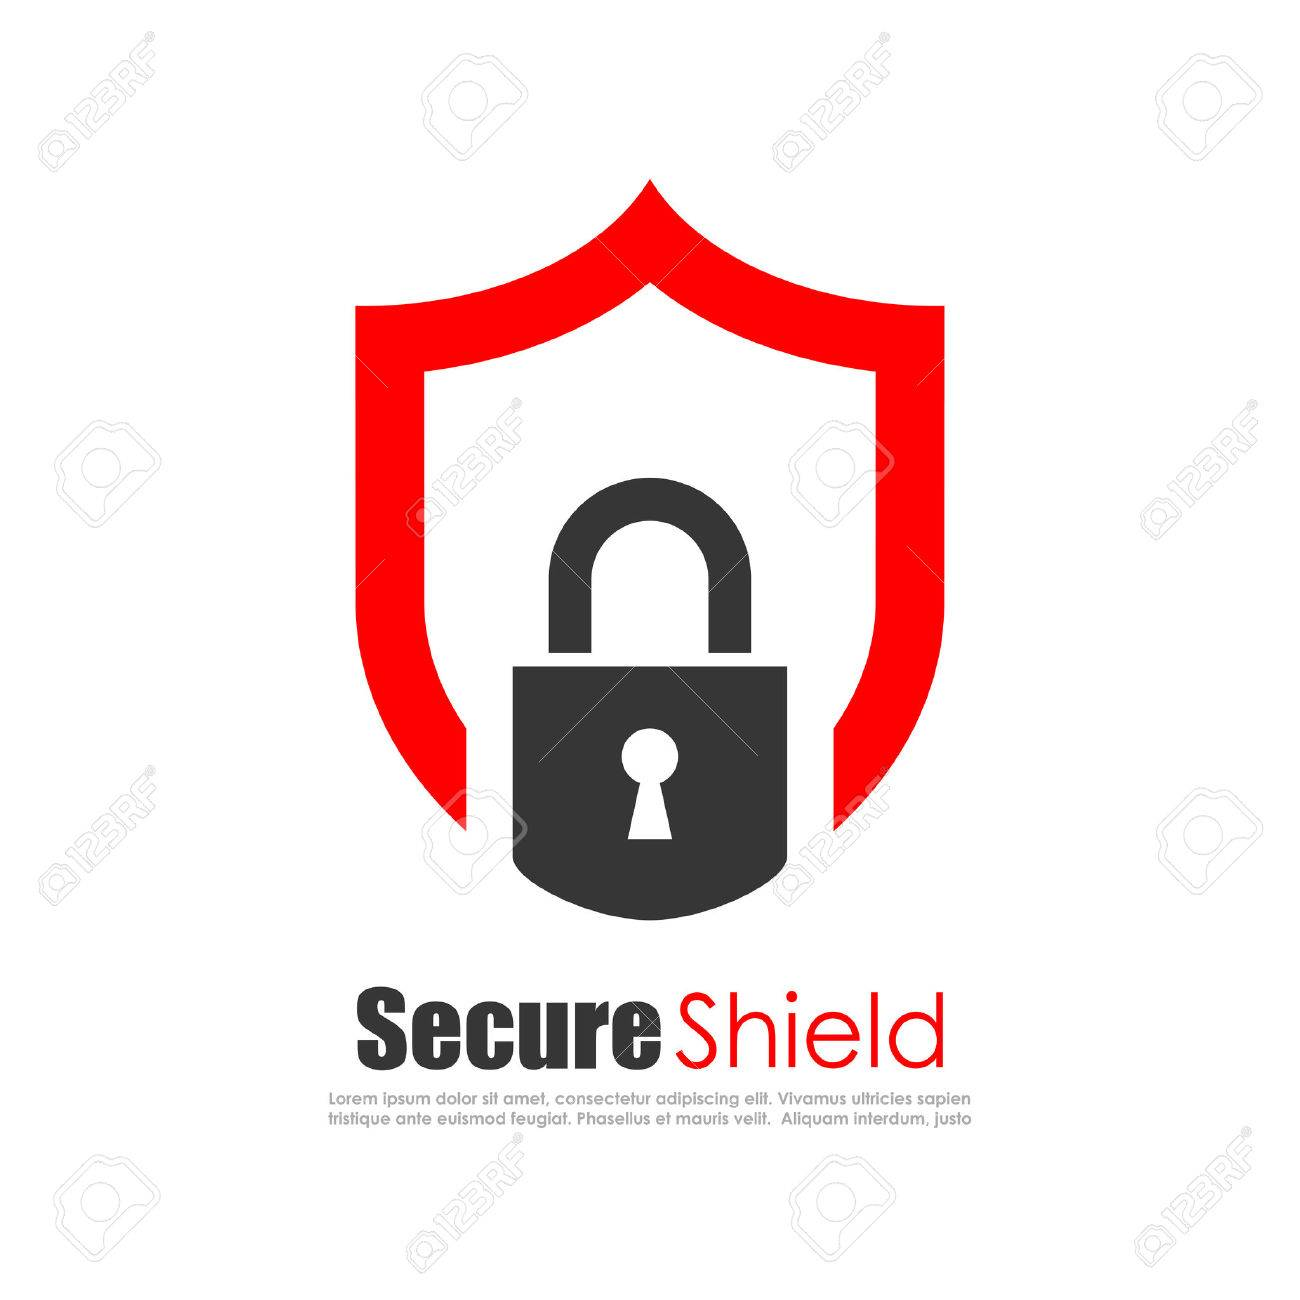 Secure protection abstract logo - 57297316